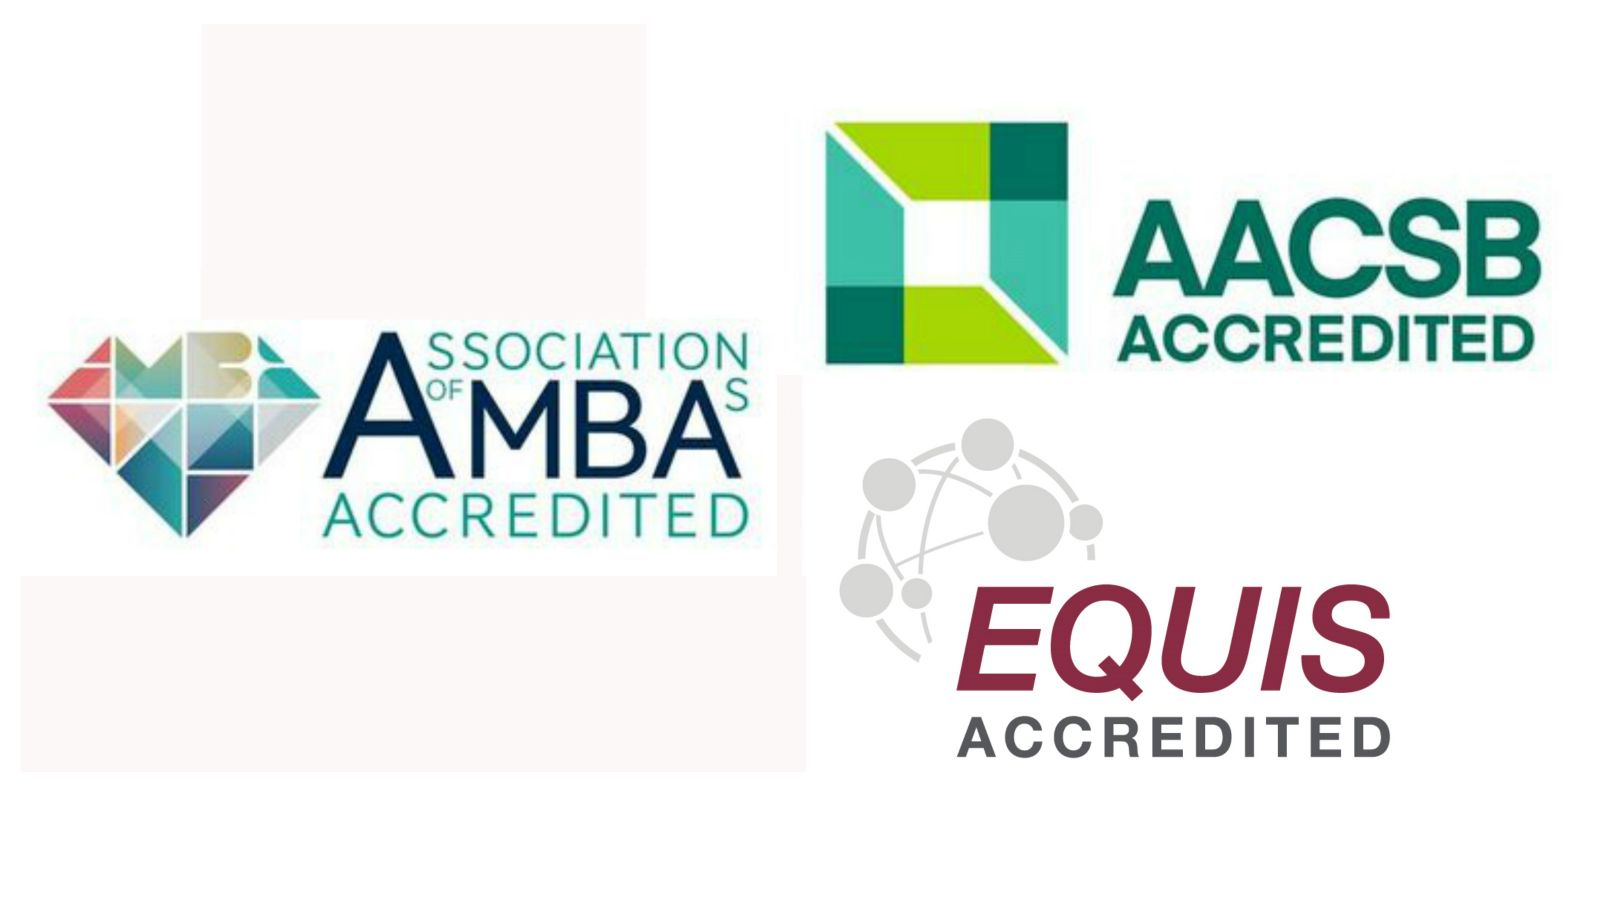 An image with four logos – UNWTO, AACSB, AMBA, and EQUIS.